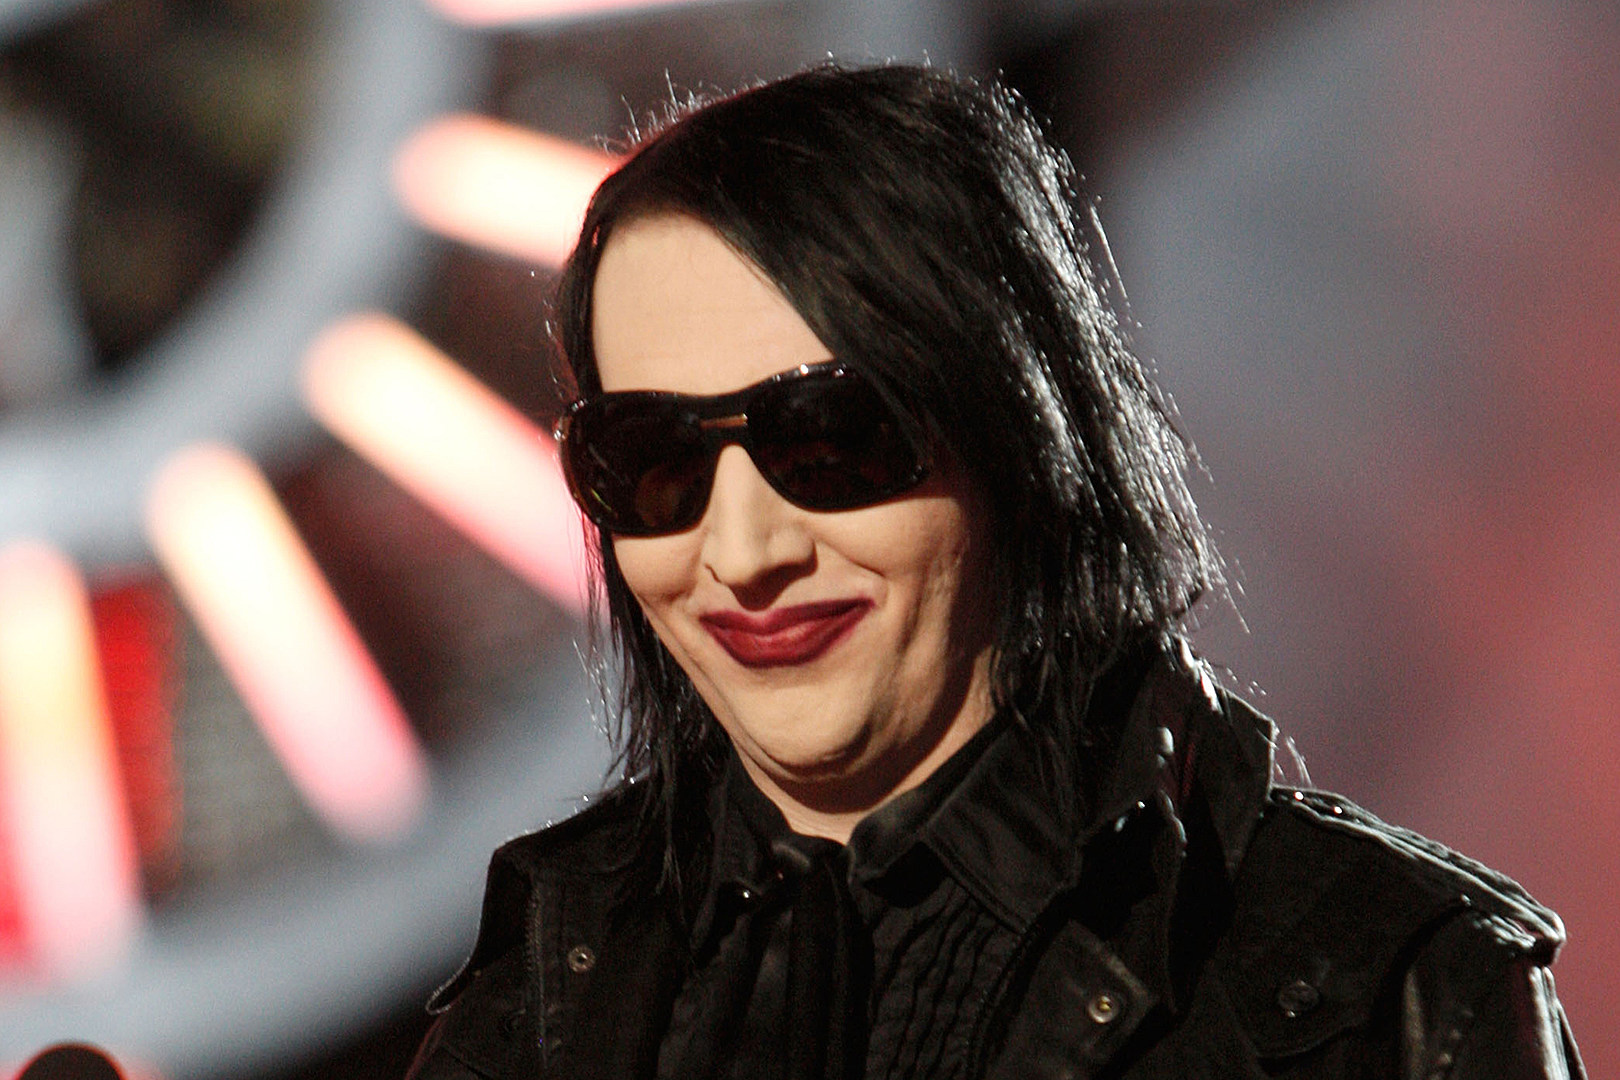 Marilyn Manson Went to Korn Show, Didn't Pee in Their Food Like He Used to